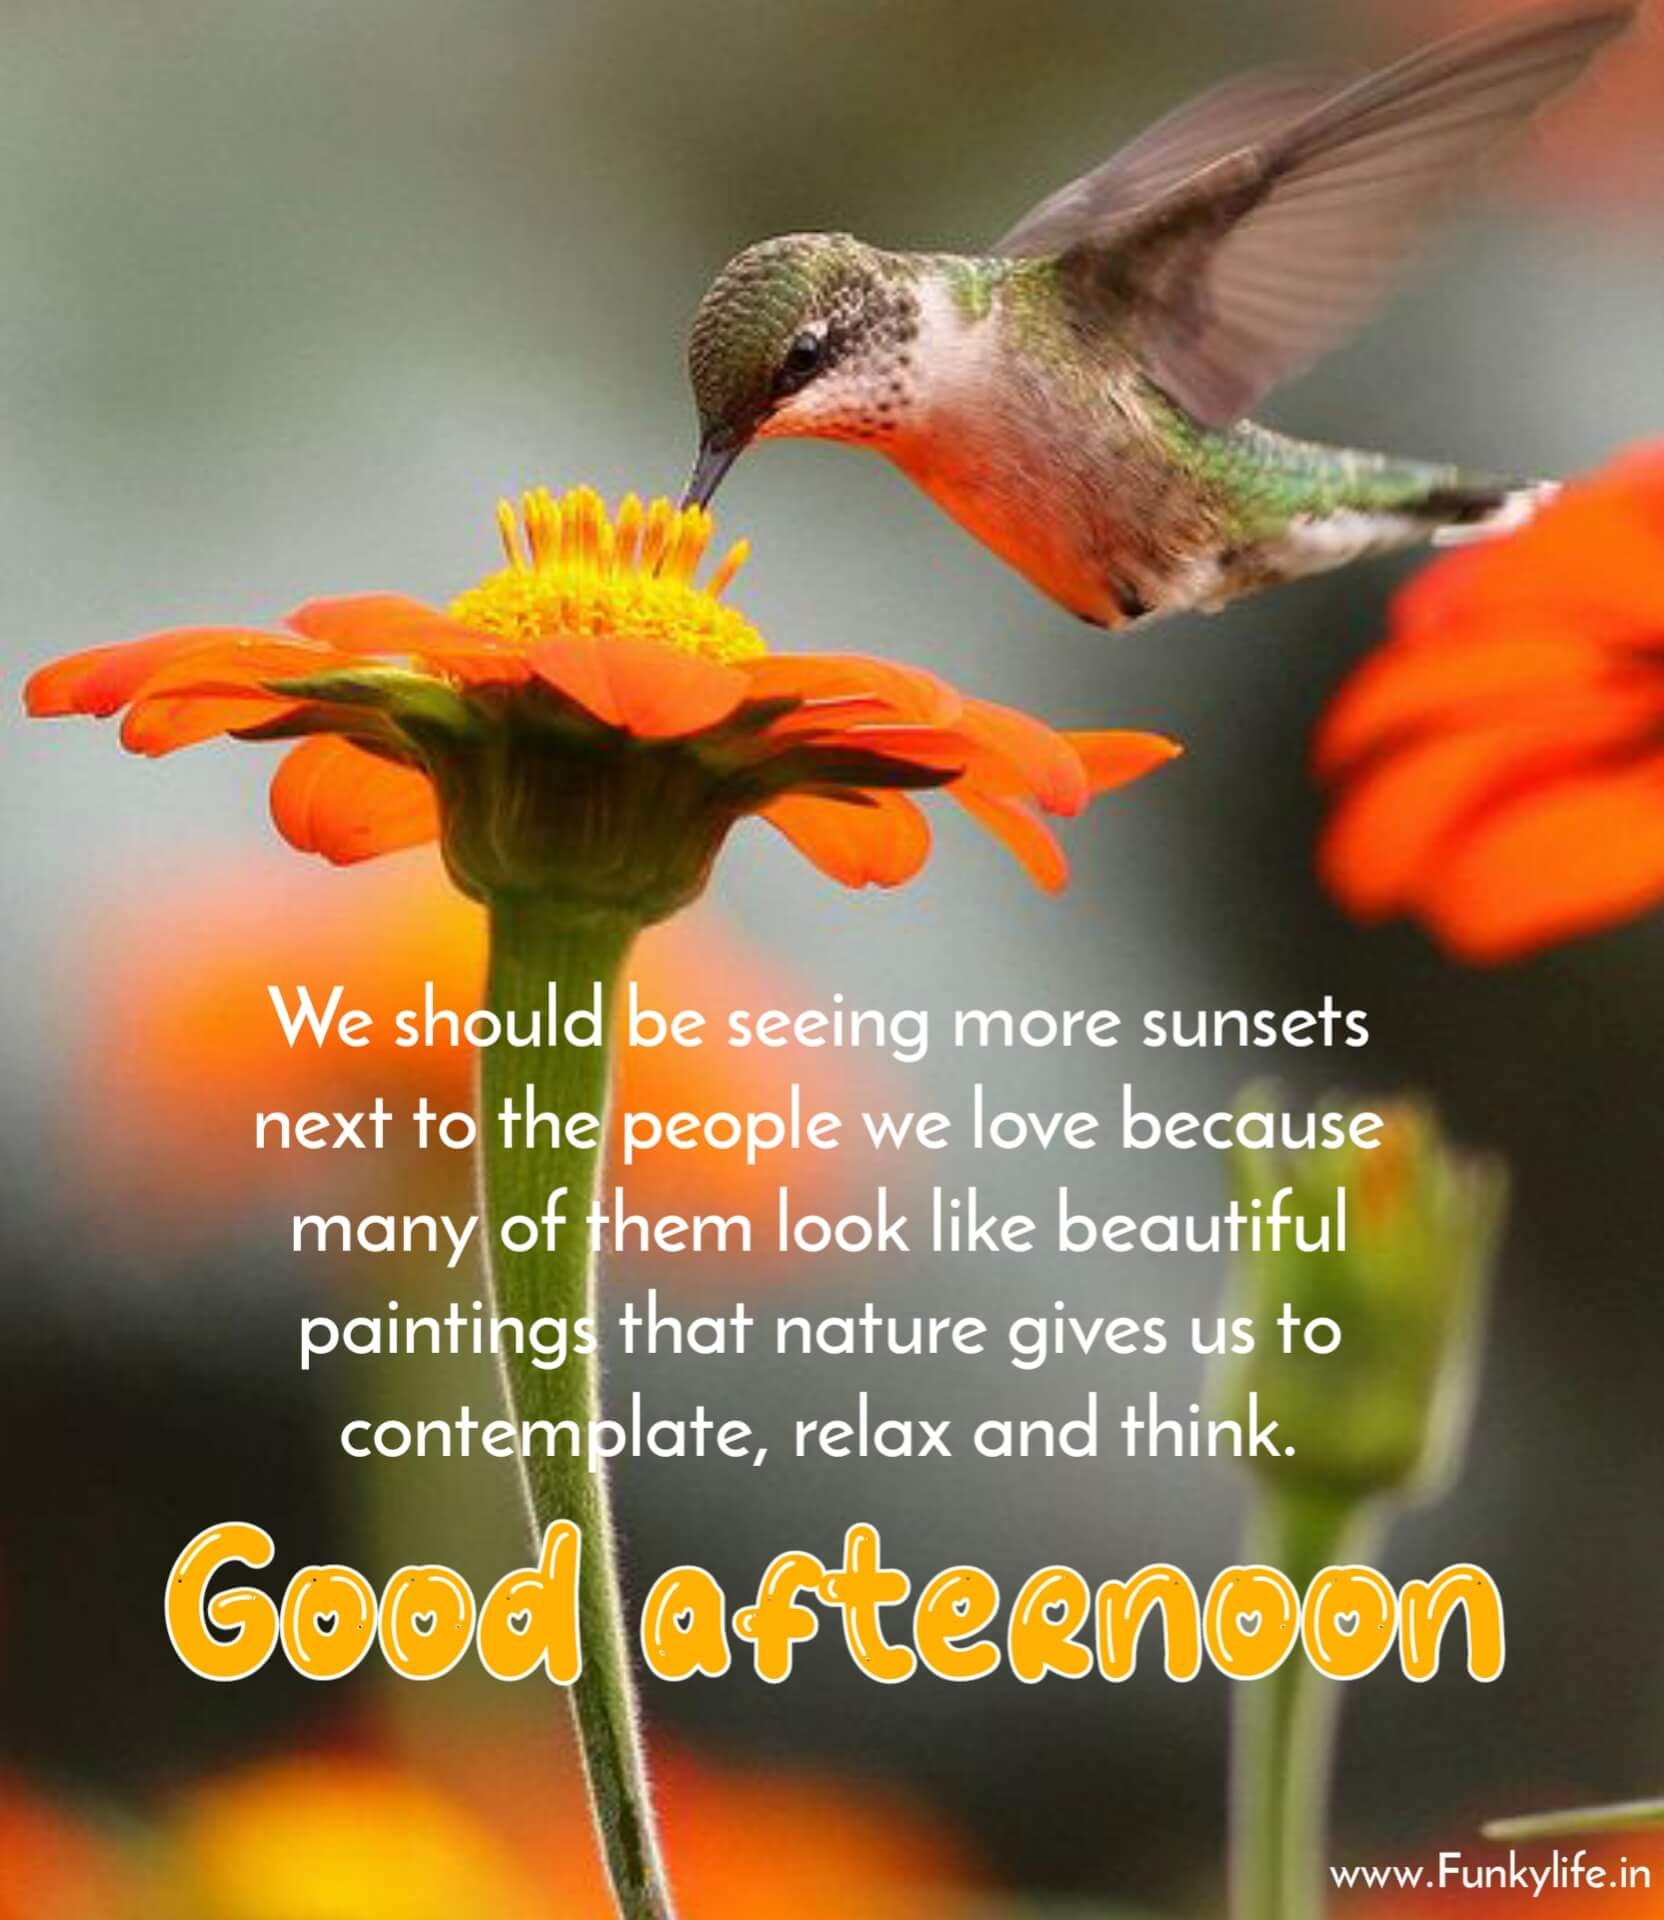 Loving Good Afternoon Images with Quotes